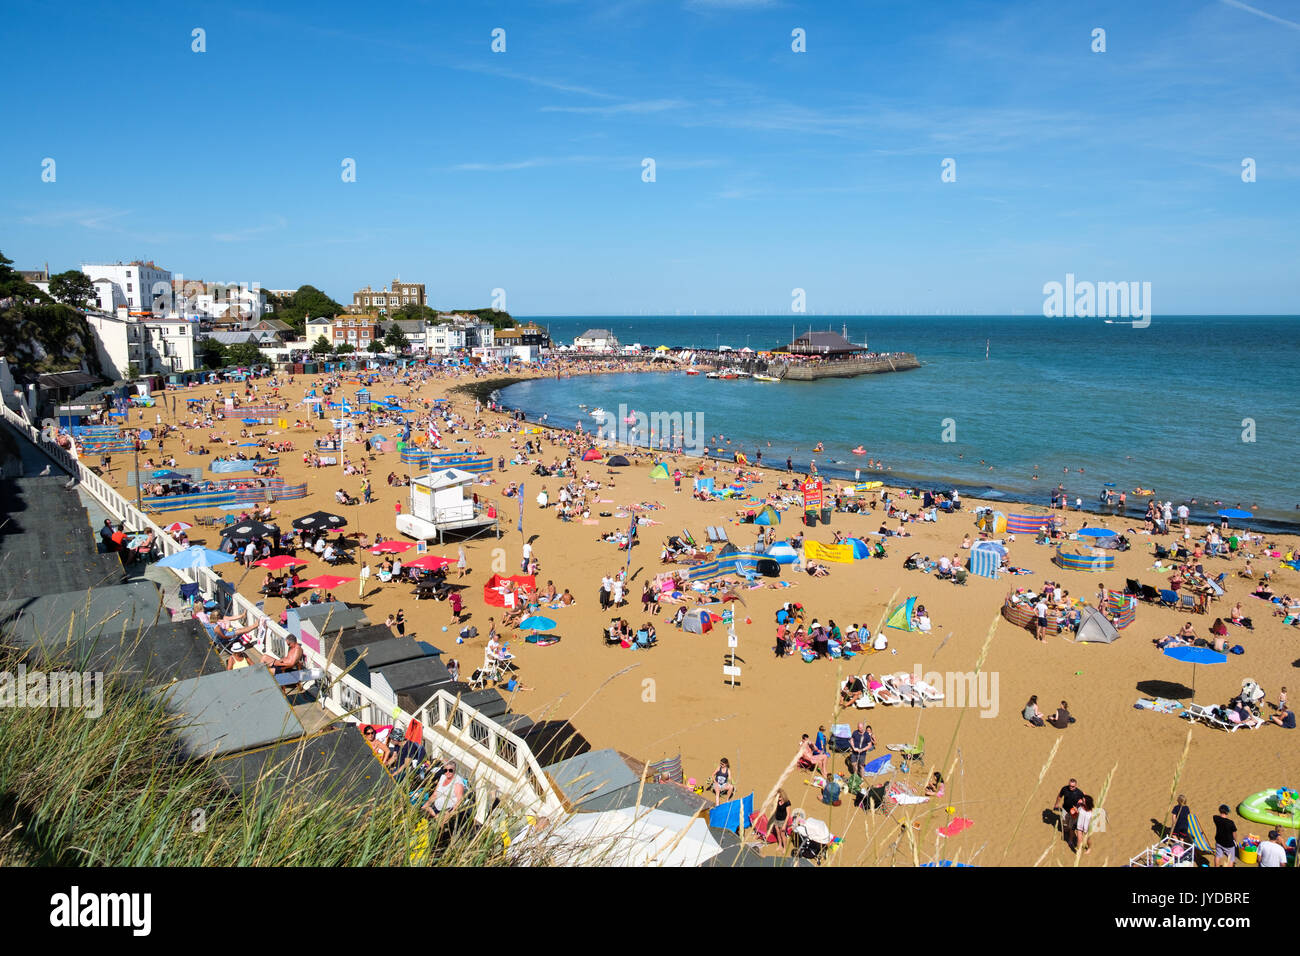 View of Viking bay beach on a sunny day, Broadstairs seaside town, Kent, England, UK Stock Photo